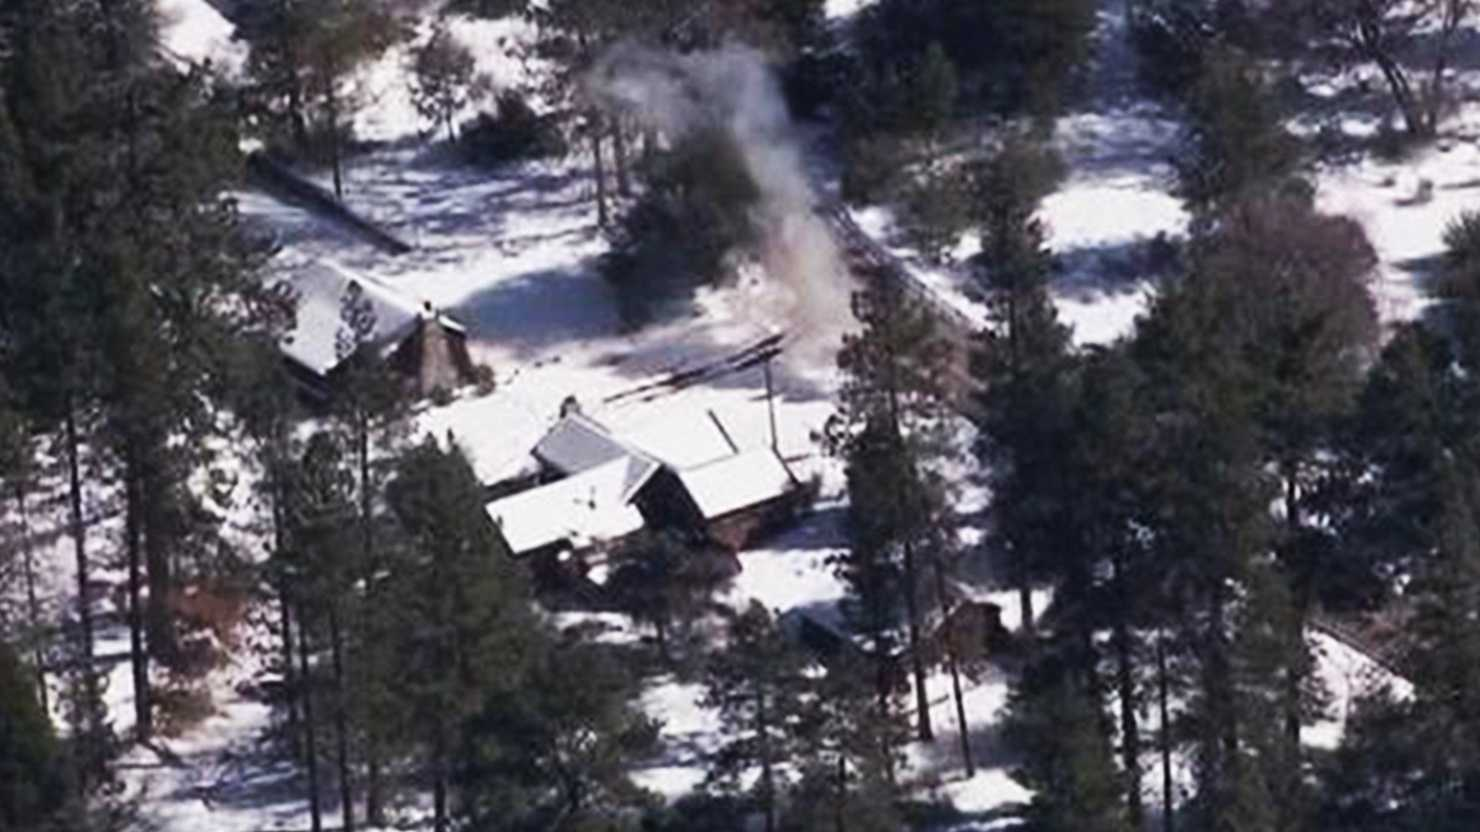 Christopher Dorner is barricaded in this cabin in Big Bear.